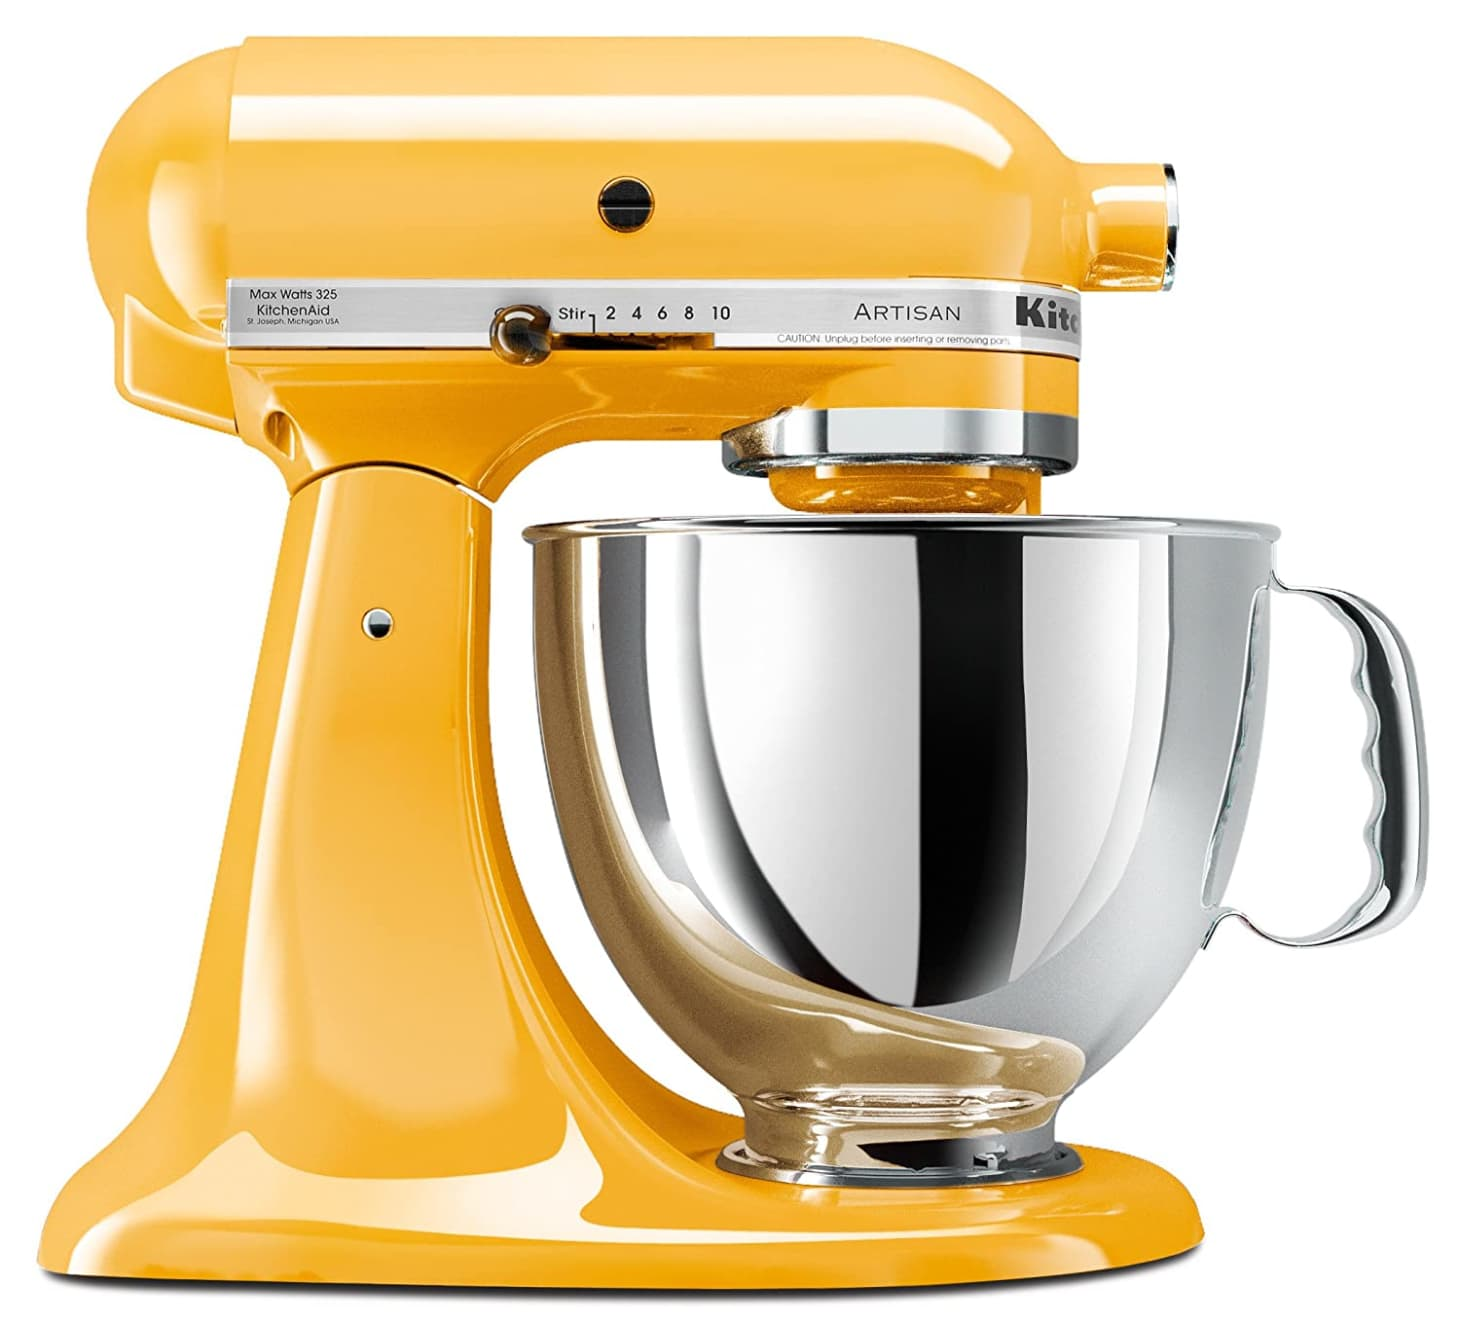 The Best KitchenAid Stand Mixer to Buy | Kitchn